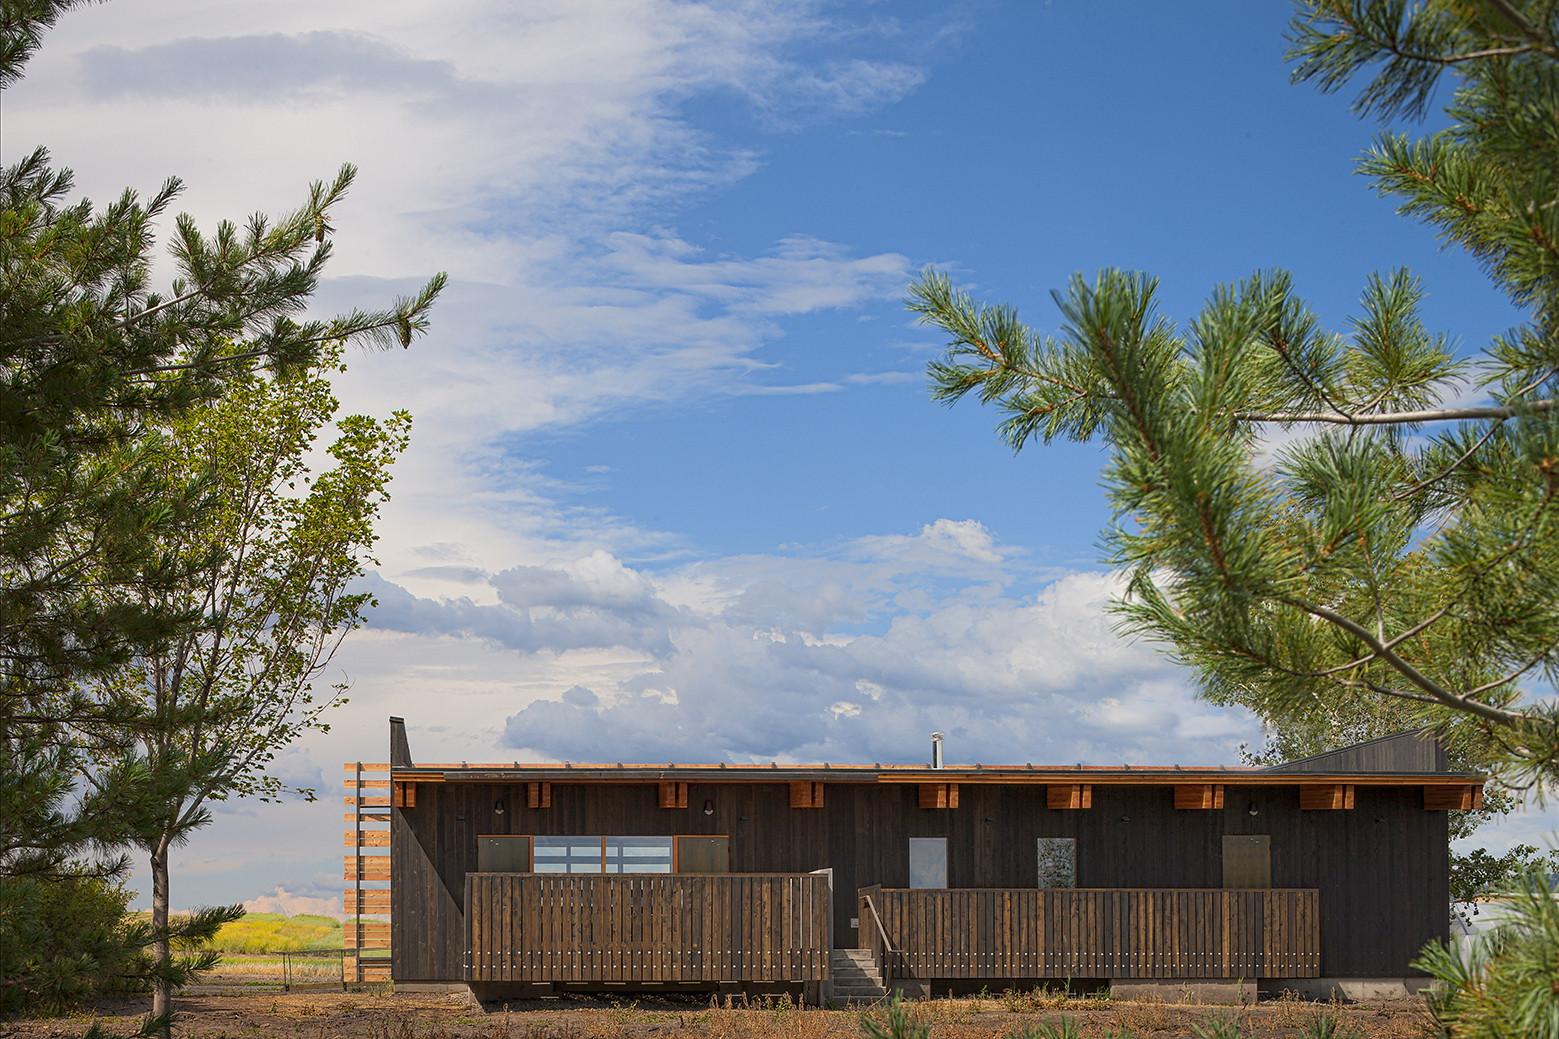 Reveley Classroom Building / Patano Studio Architecture, Courtesy of Patano Studio Architecture